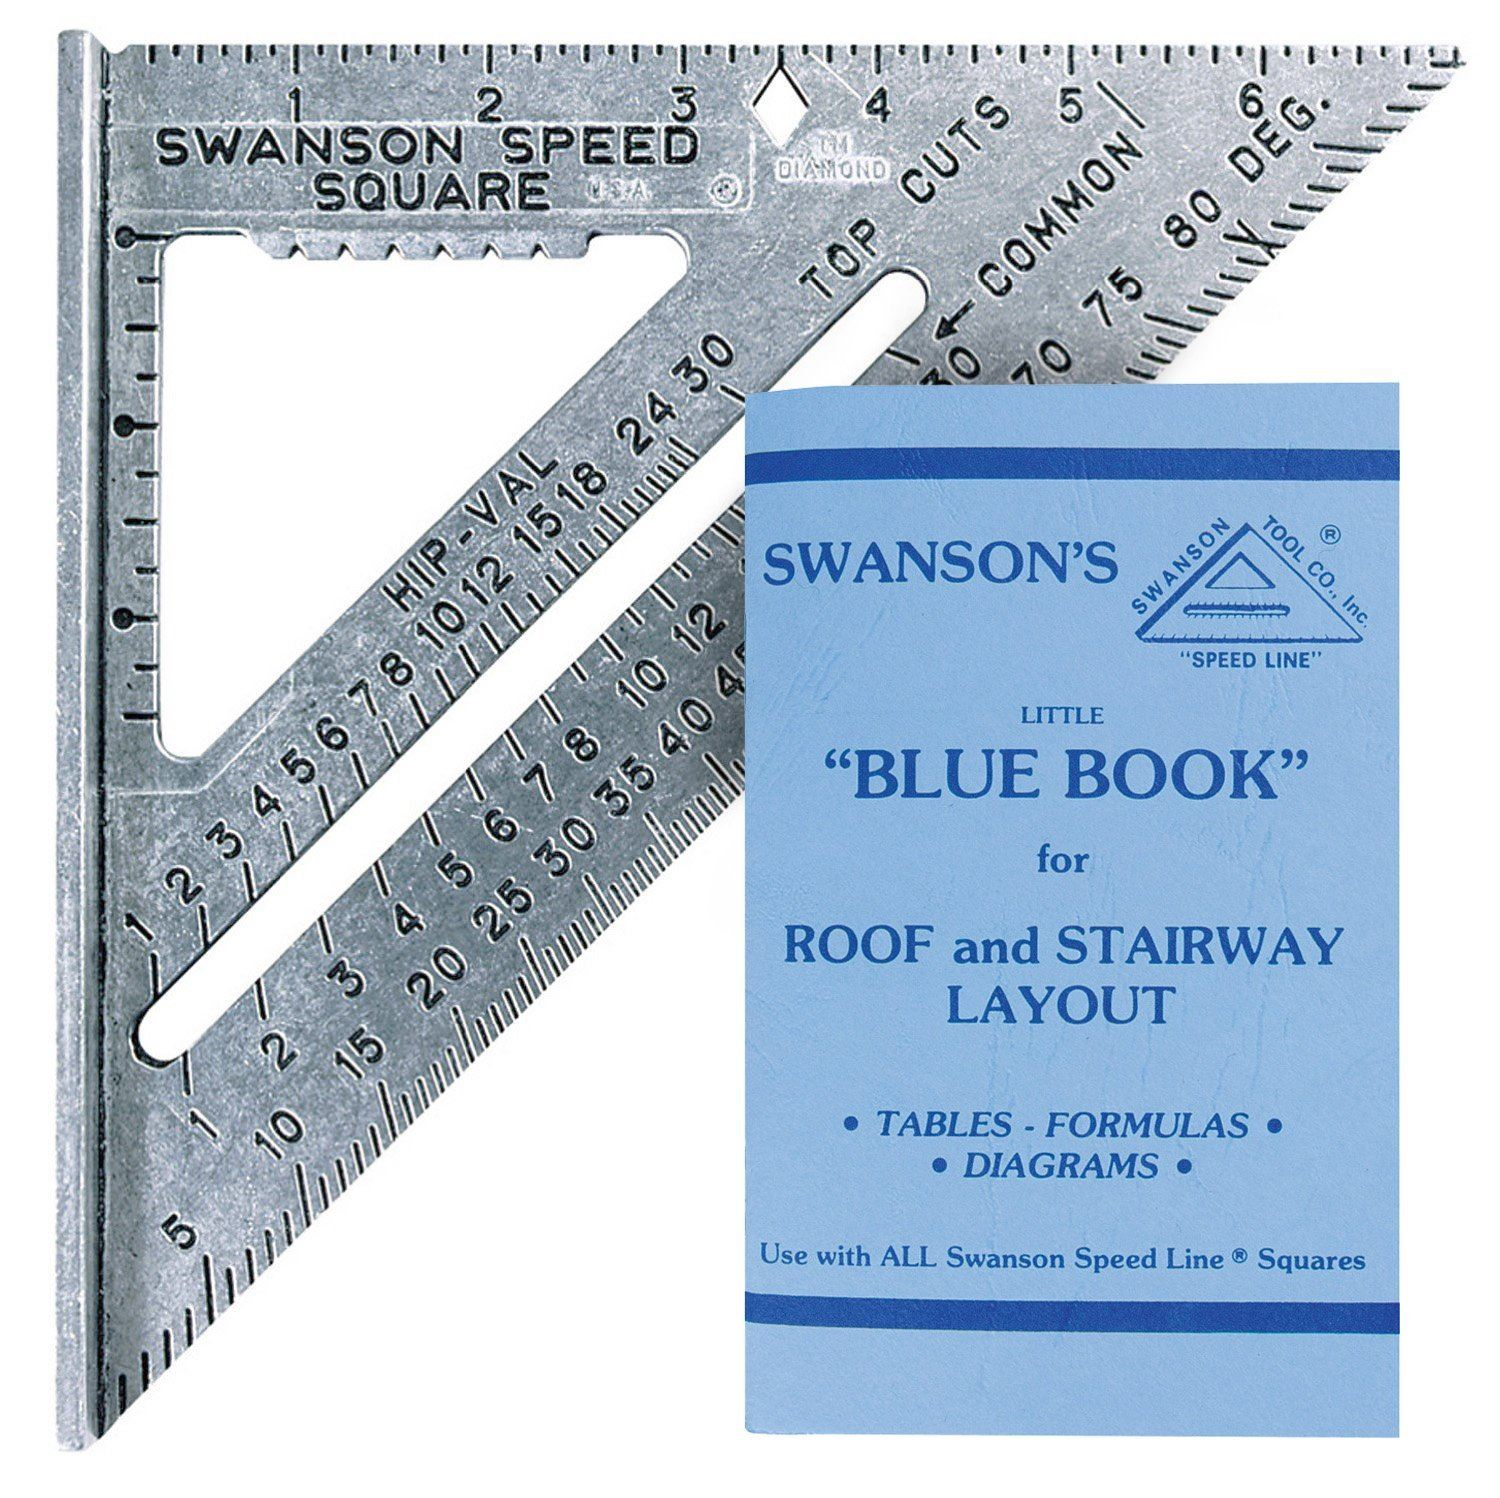 Swanson 7 Quot Speed Roofing Rafter Square With Blue